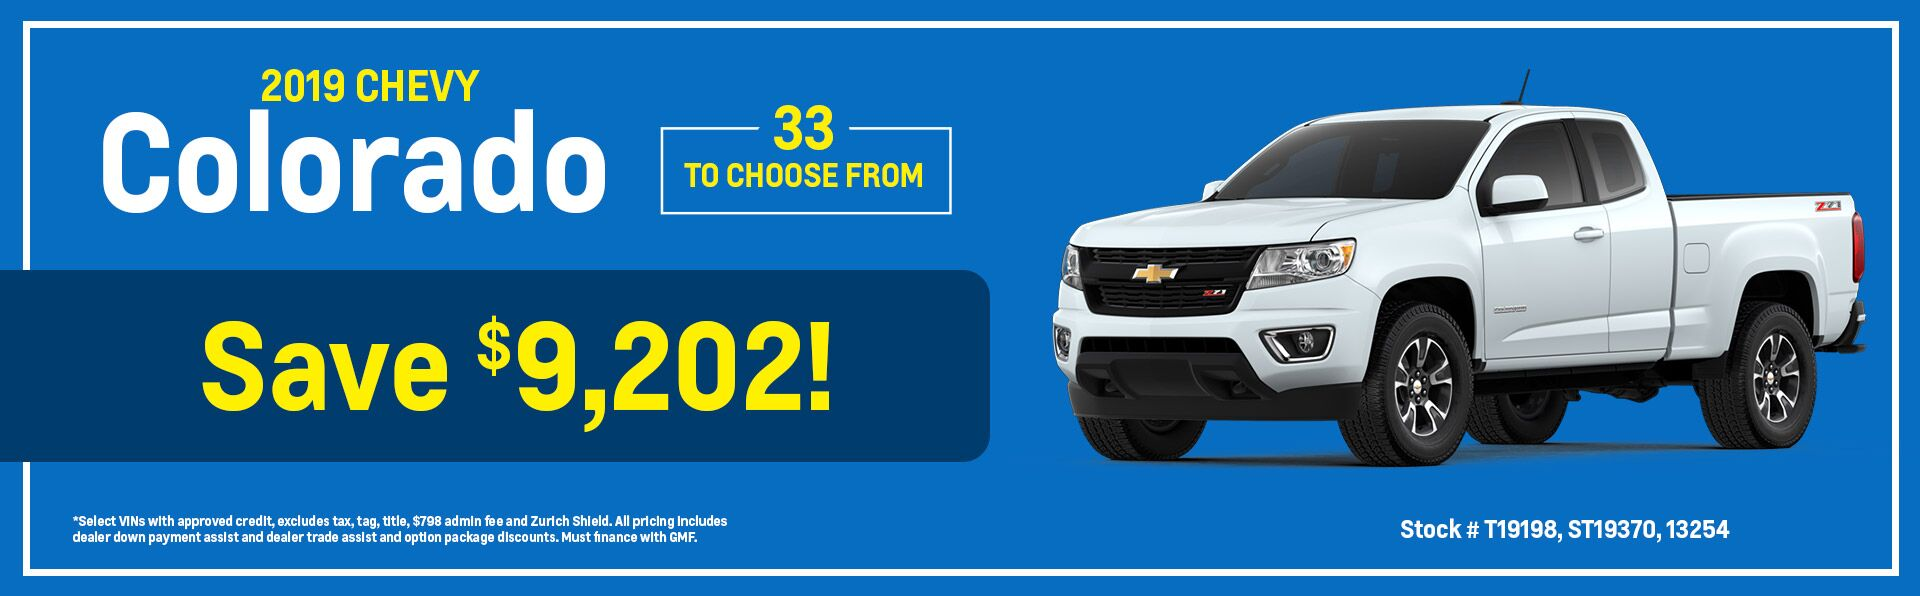 Chevy Dealer In Swansboro Serving Jacksonville And Morehead City